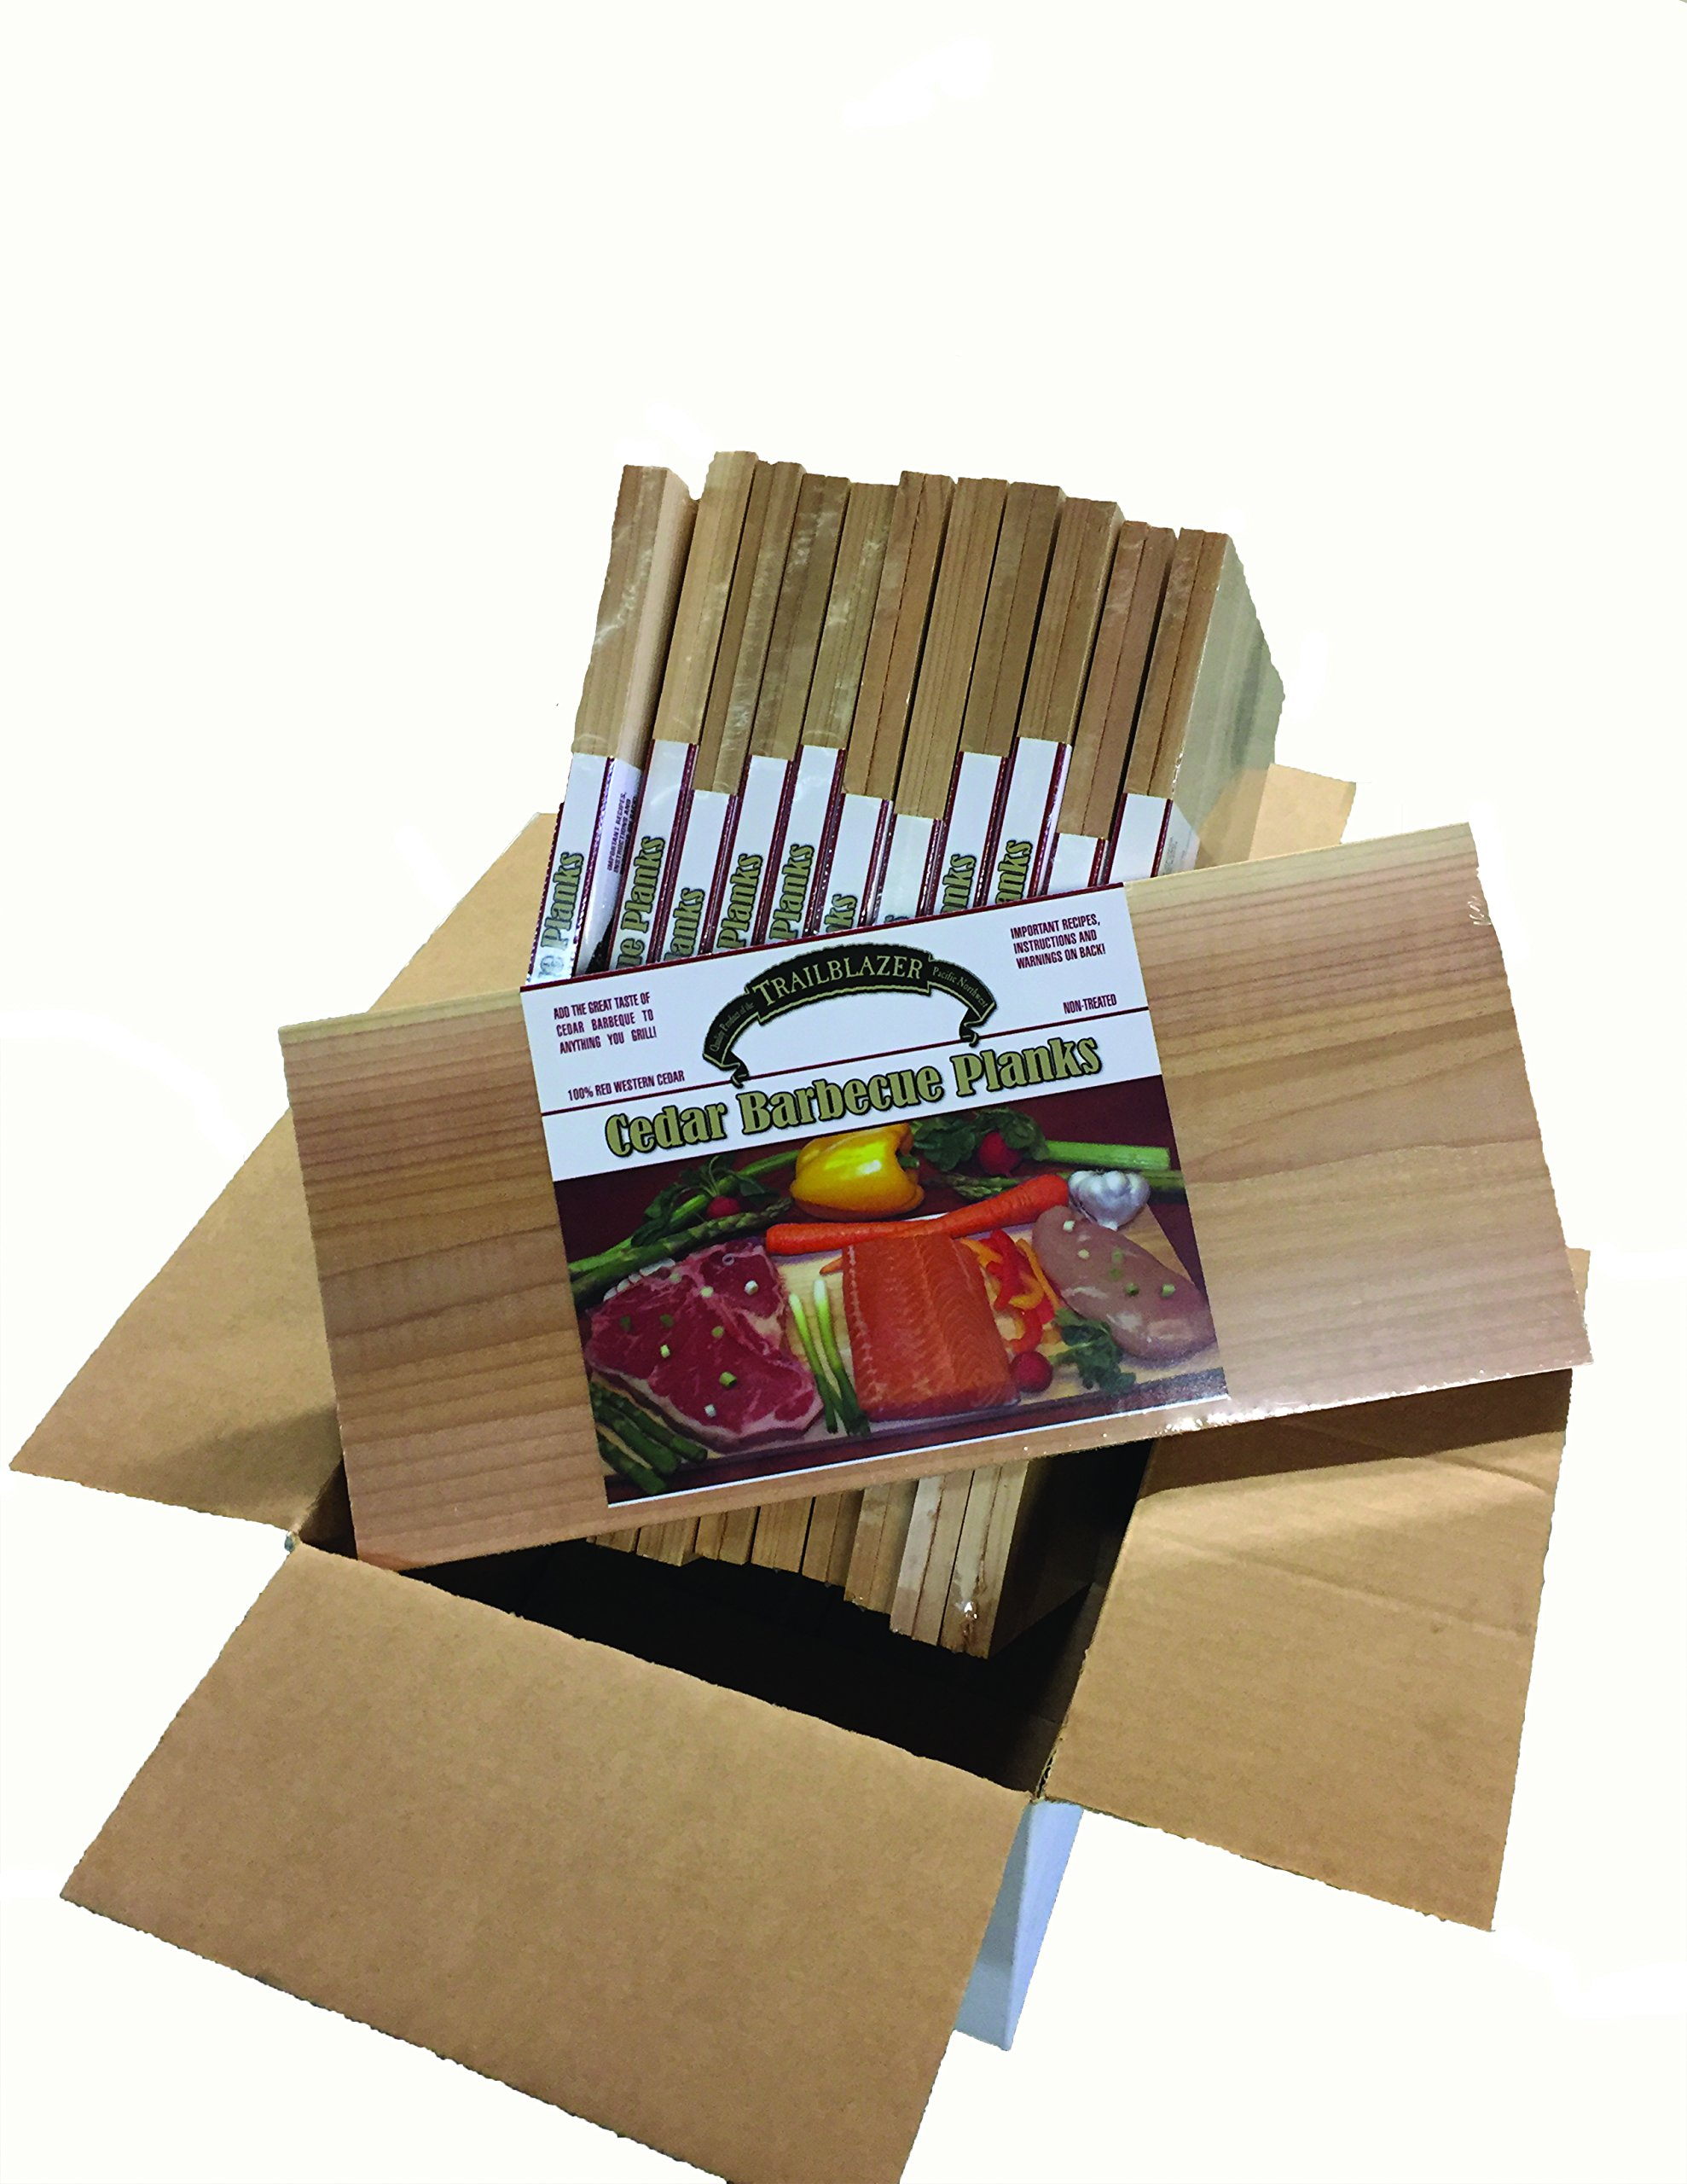 Case of Gourmet Cedar Grilling Planks (15'' x 7'' x 3/8'') 2 Packs Packaged for Resale (24 Boards Total)